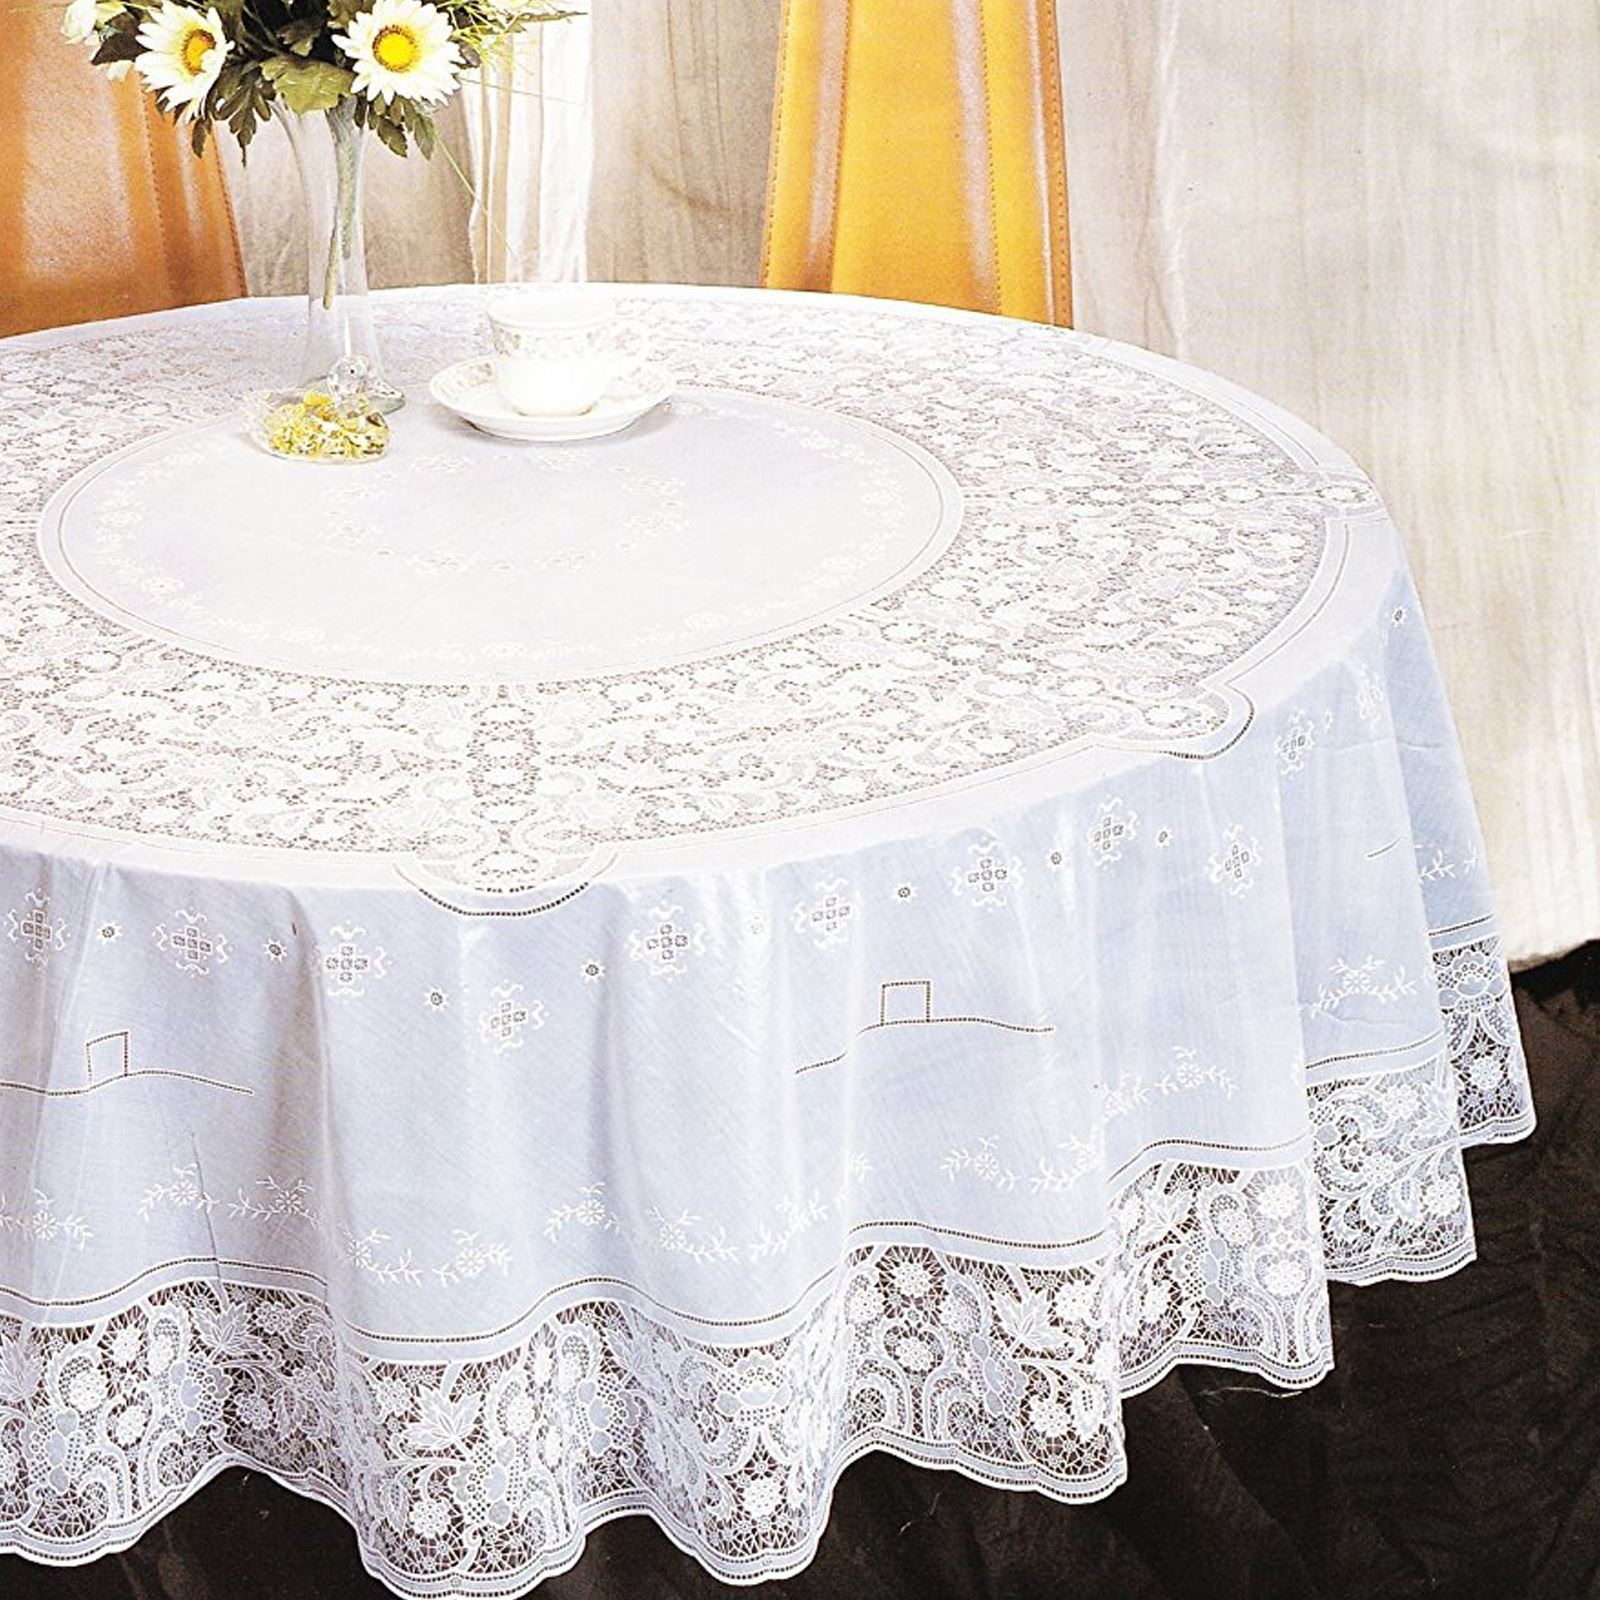 Vinyl Lace Tablecloth Table Cover White Square Round Oval